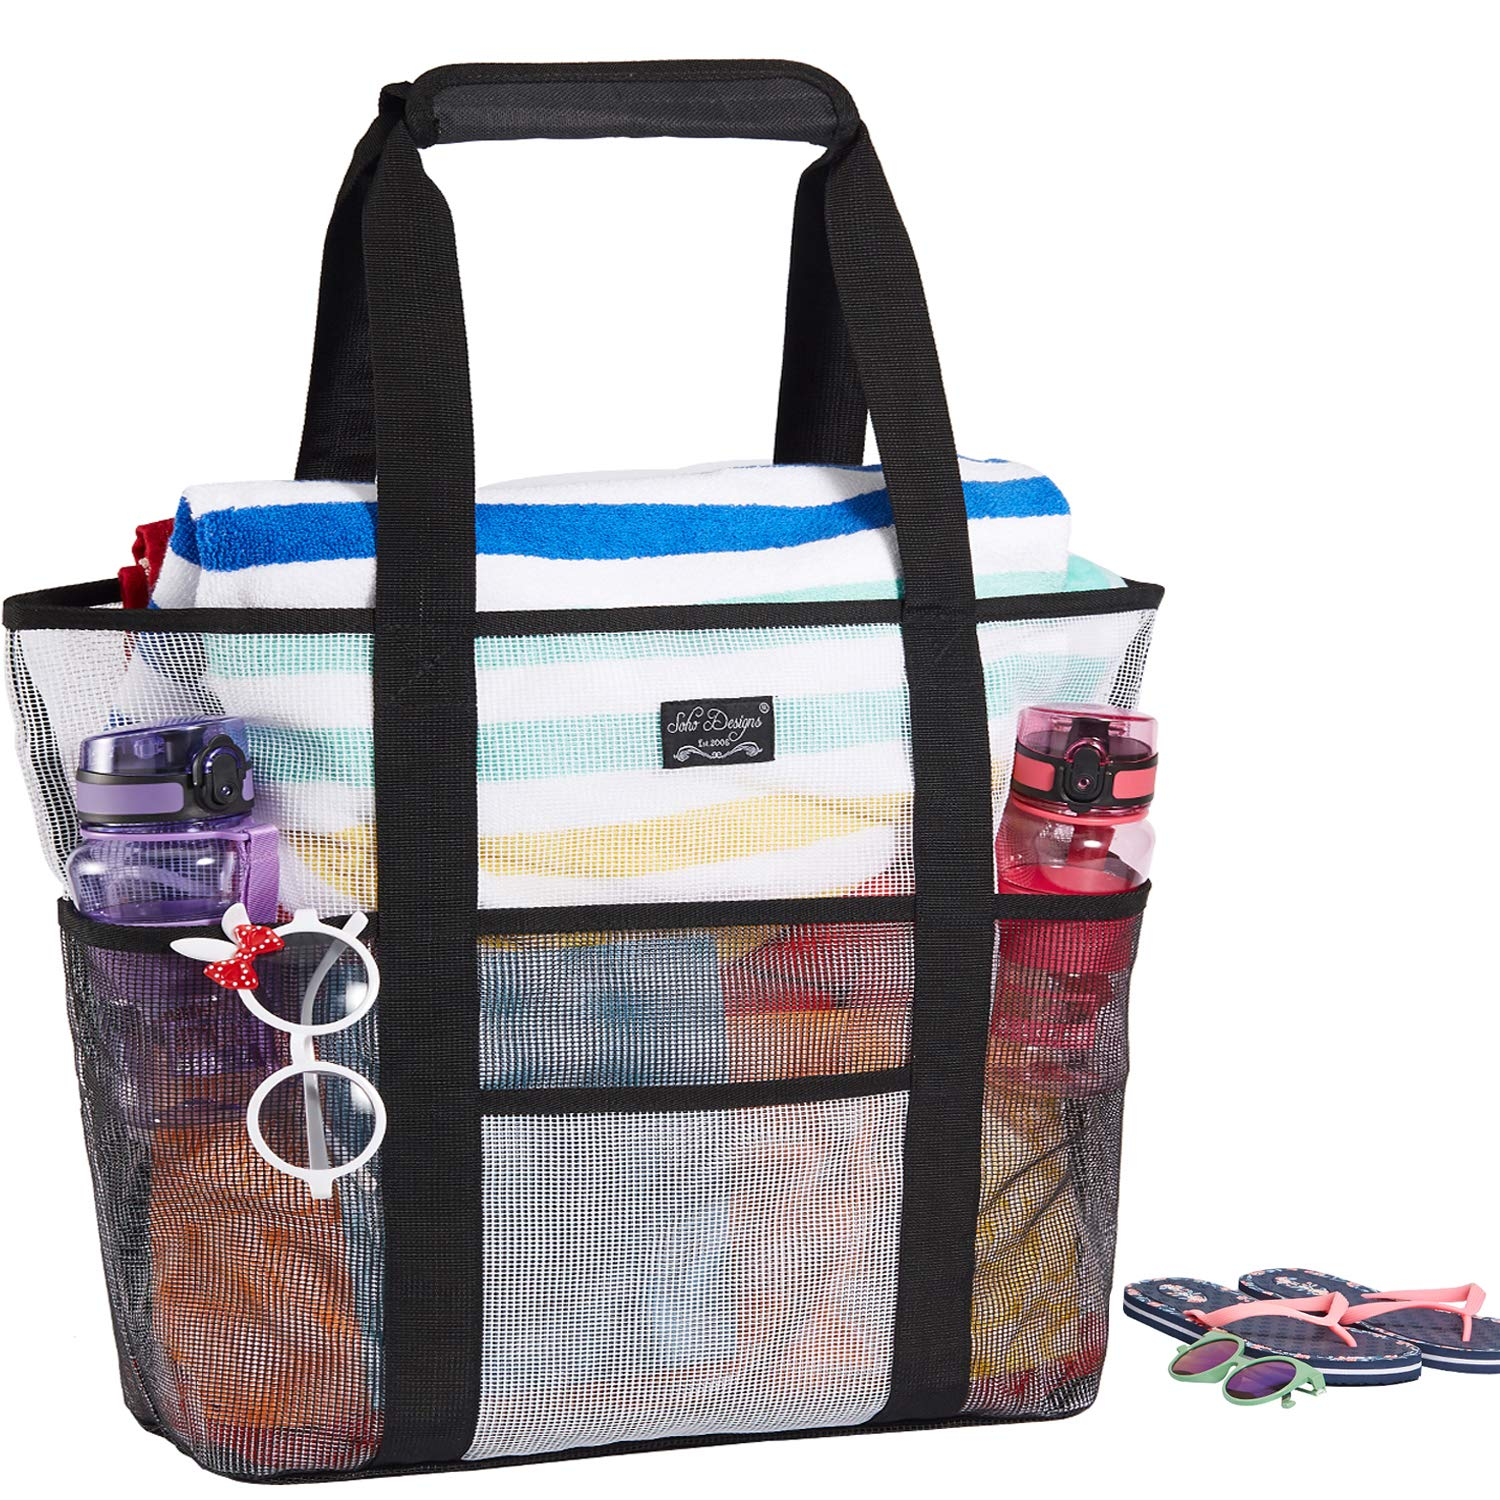 Mesh Beach Bag, Beach Bags and Totes with Handles, Frank Mully Large Toy Tote Bag